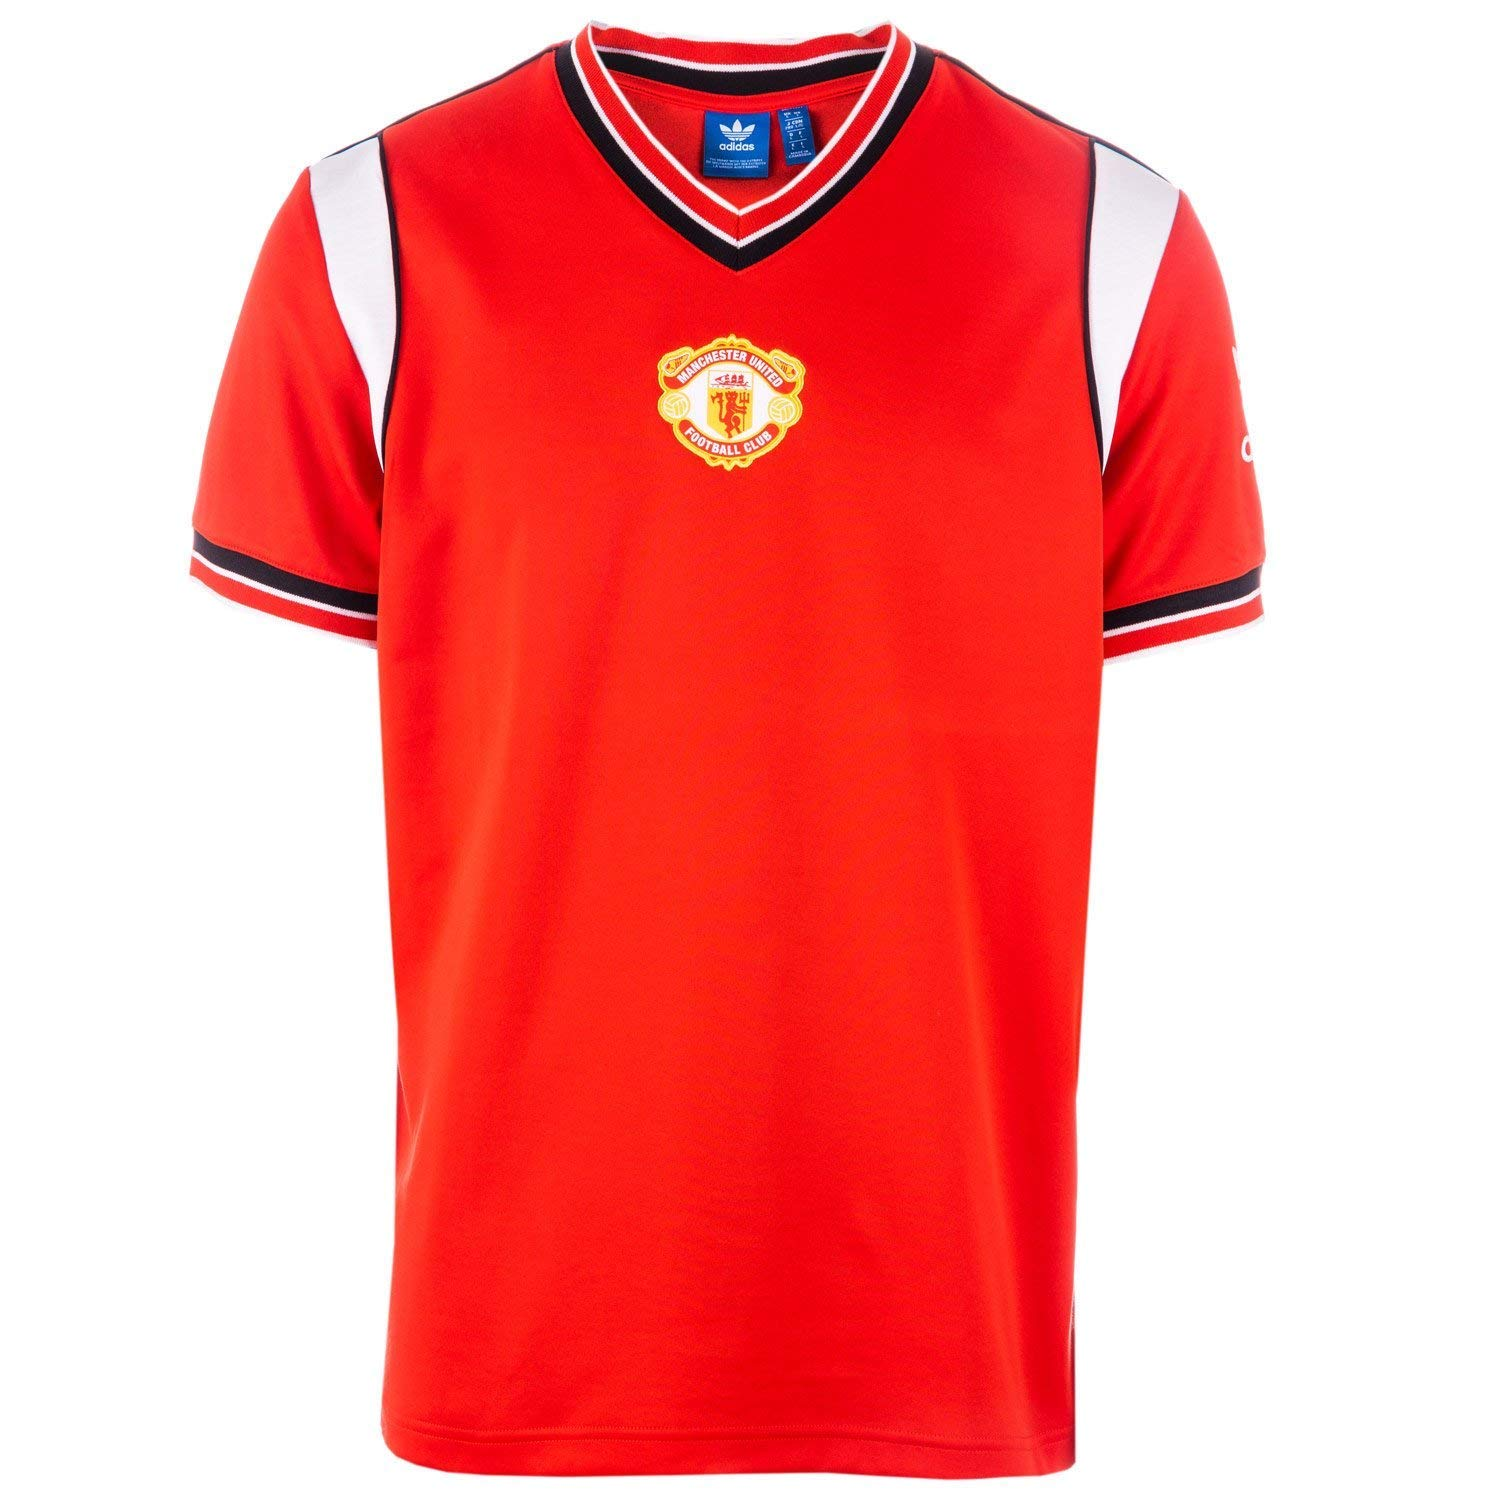 timeless design 2ba27 50fcb adidas Originals Mens Manchester United 85 Home Jersey in Red